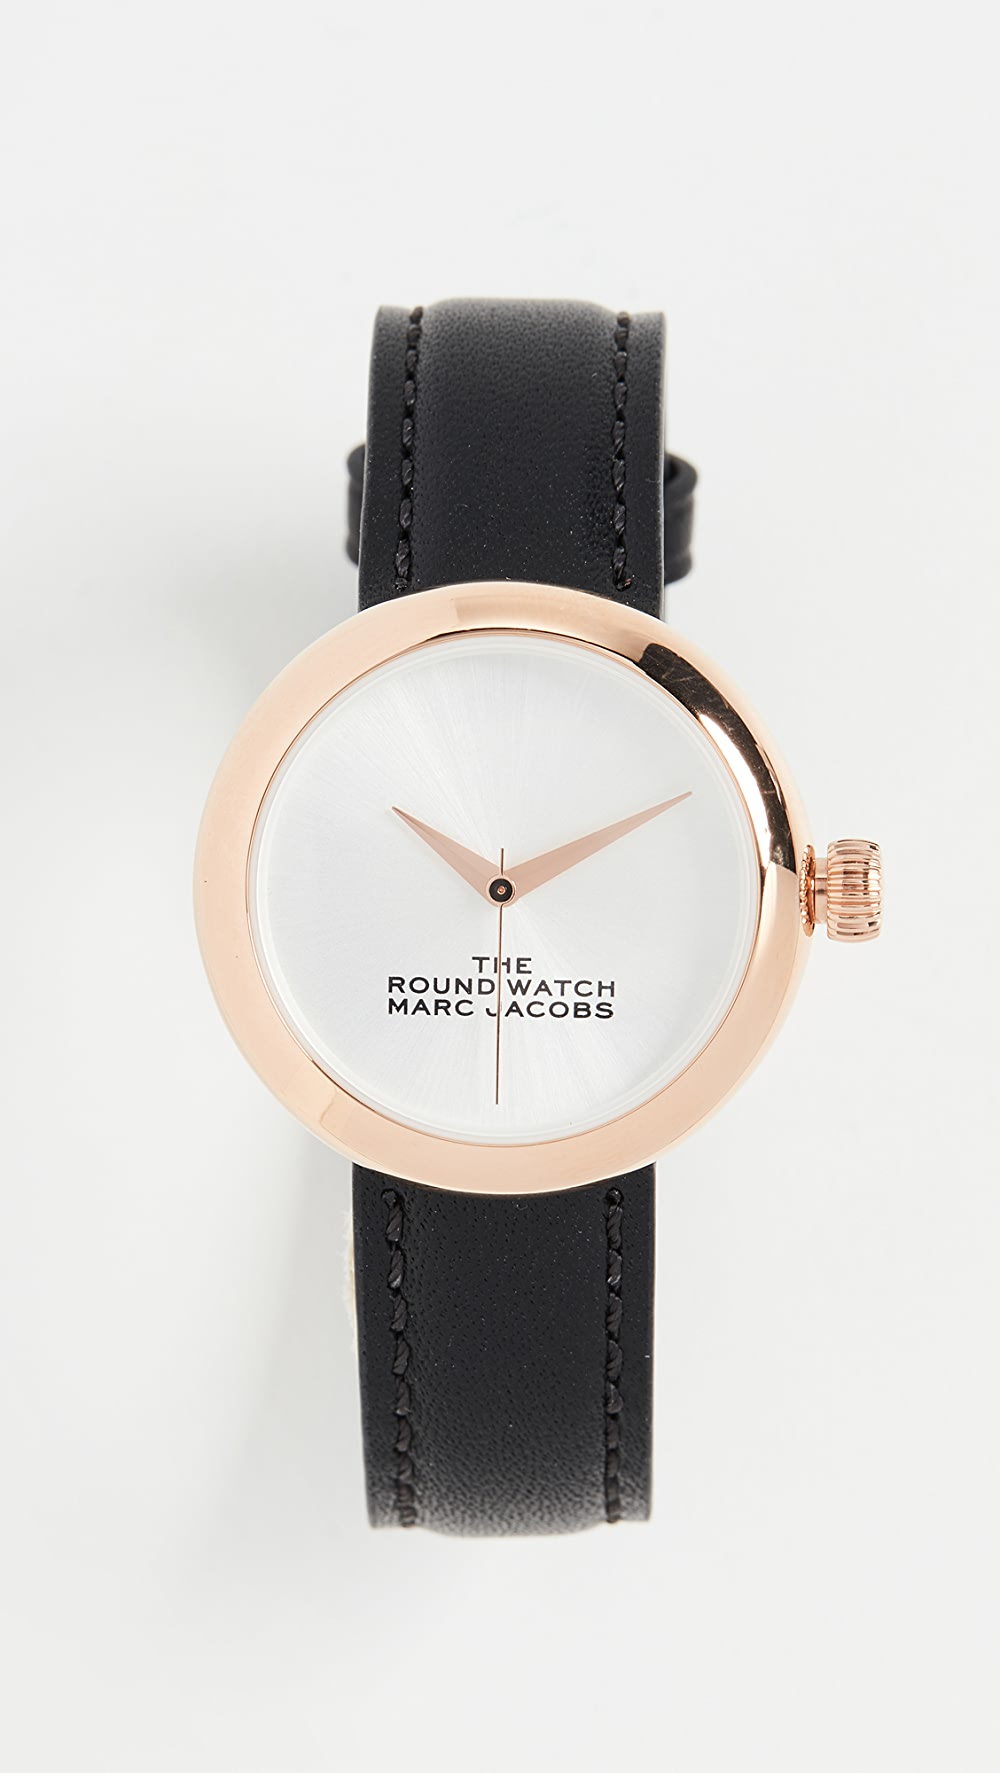 Precise The Marc Jacobs - The Round Watch Last Style